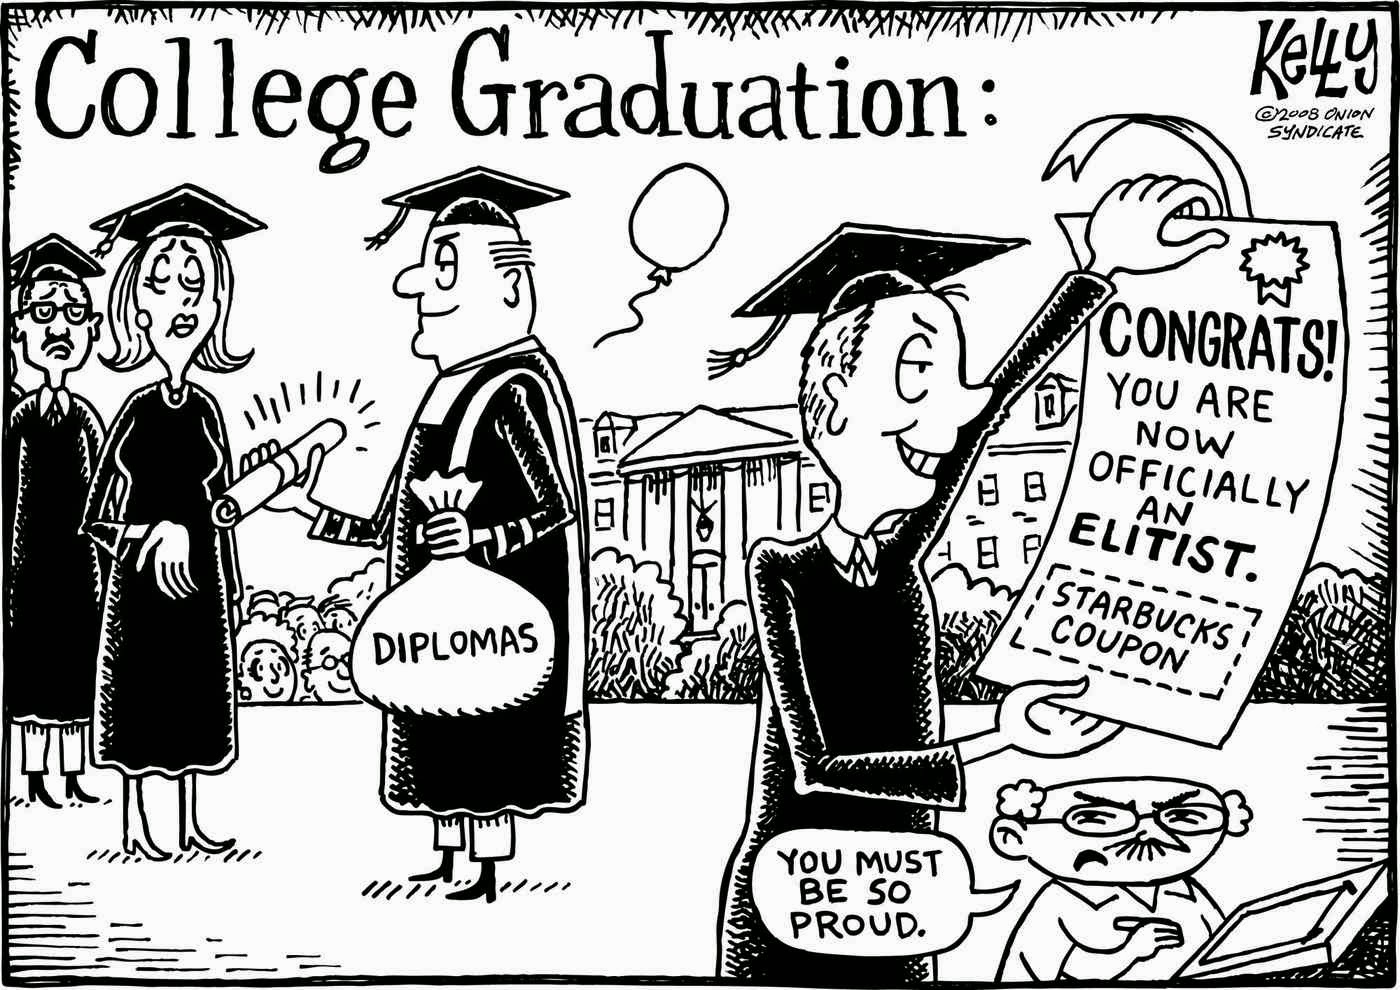 College Graduation Funny Cartoon, Jokes